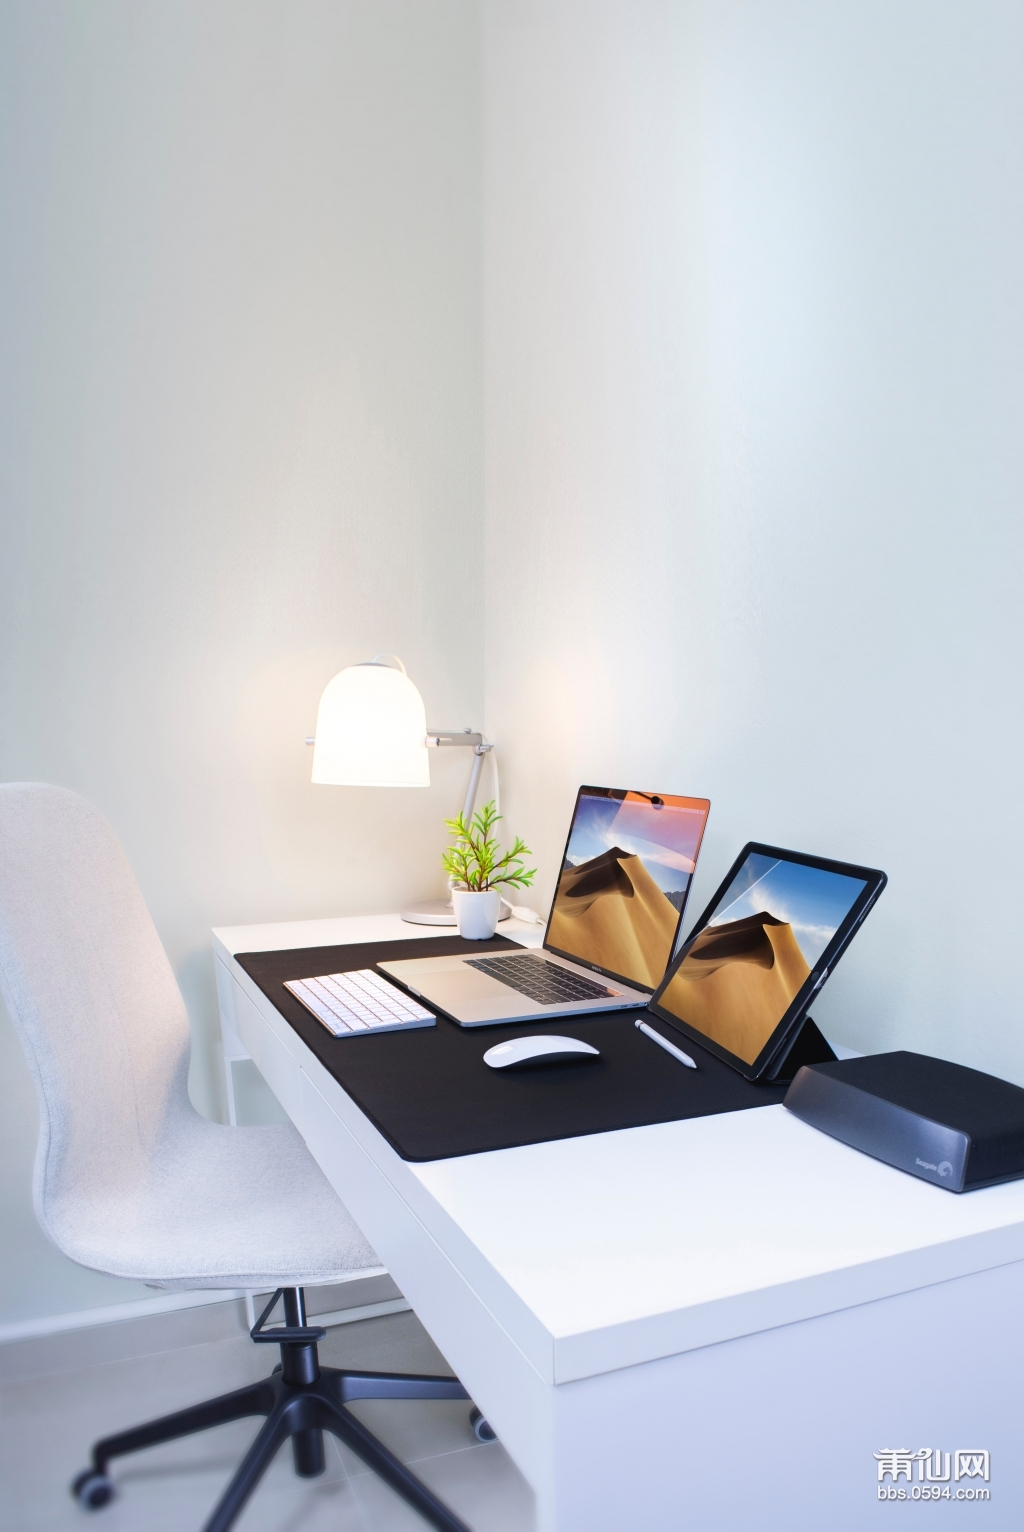 photo-of-a-laptop-and-a-tablet-on-the-table-2528118.jpg